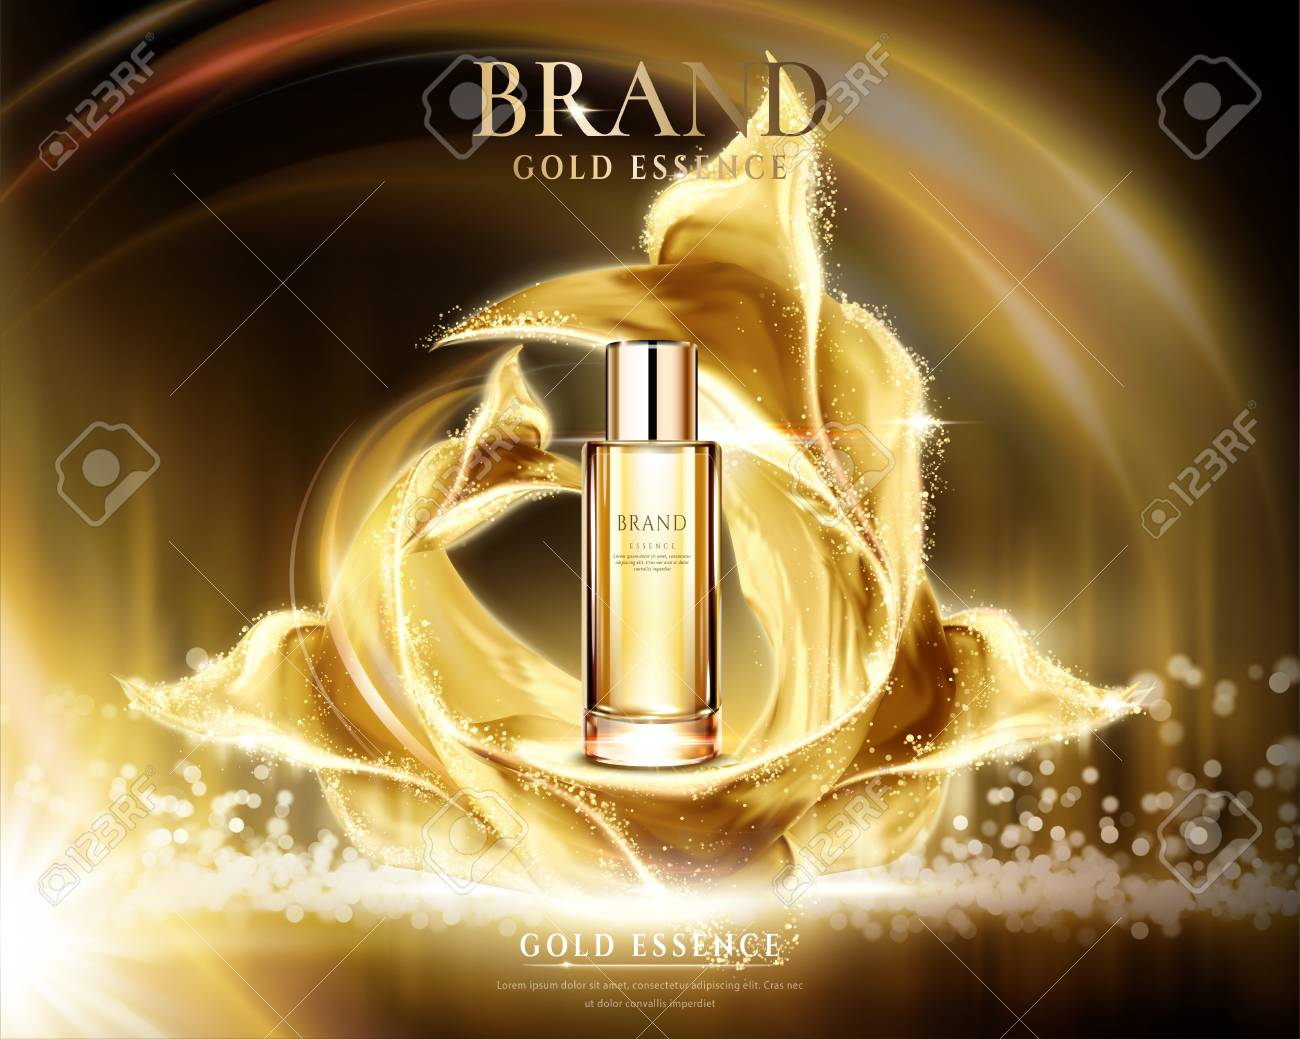 Golden essence ads, glass container with glittering satin on abstract lighting background in 3d illustration - 99345711